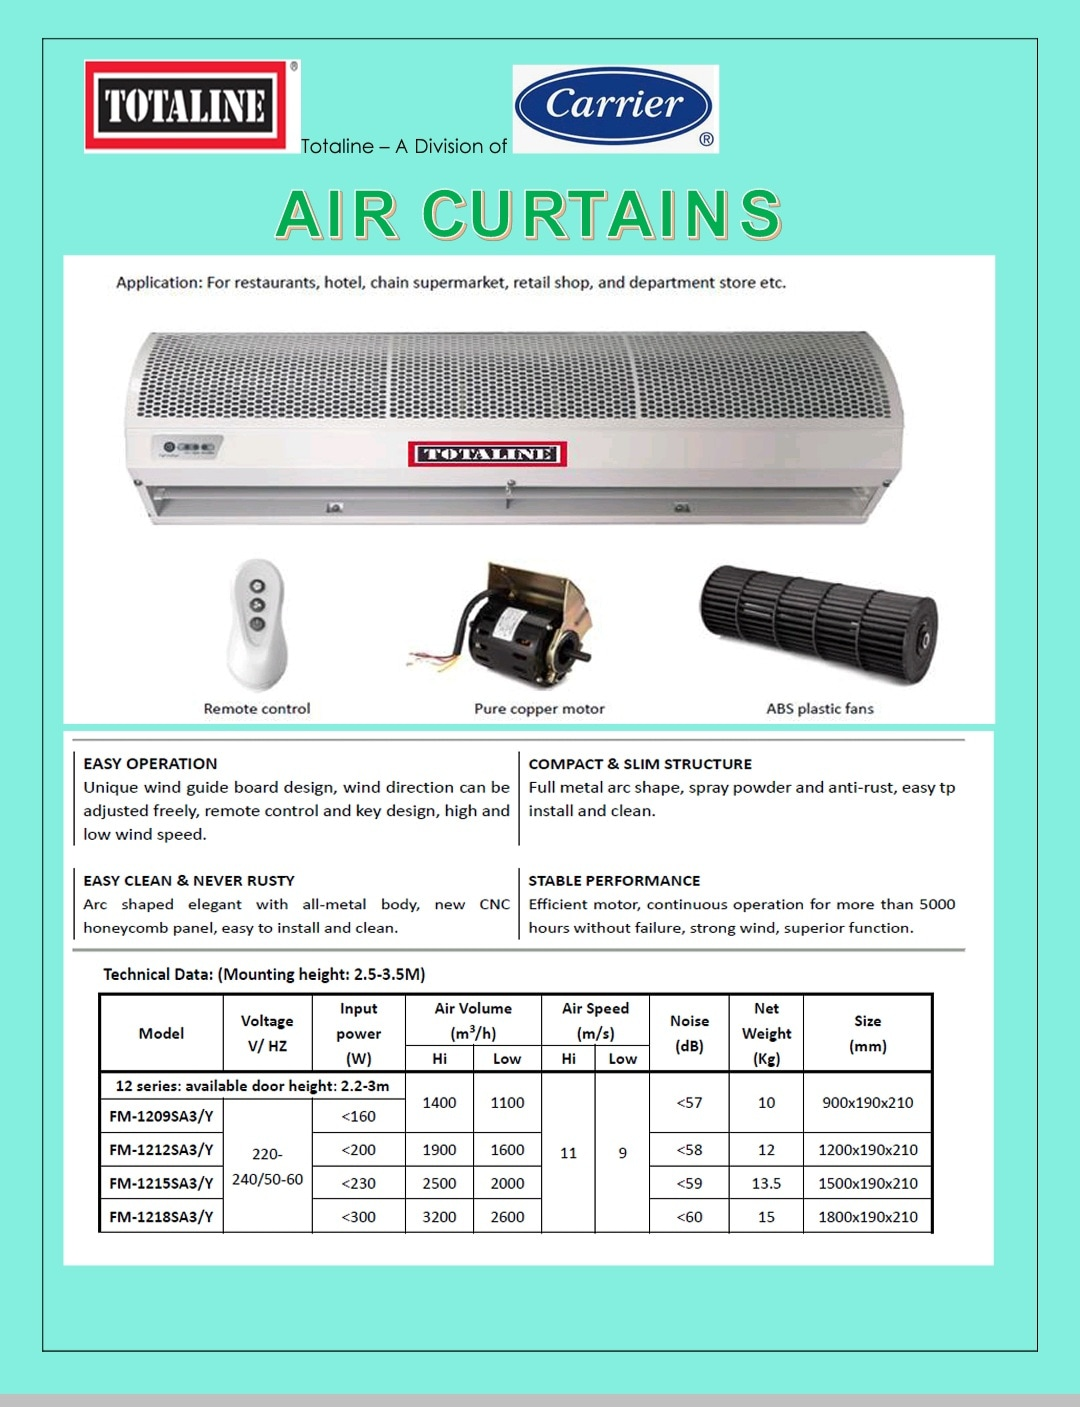 AIRCURTAIN 5 FT (TOTALINE)